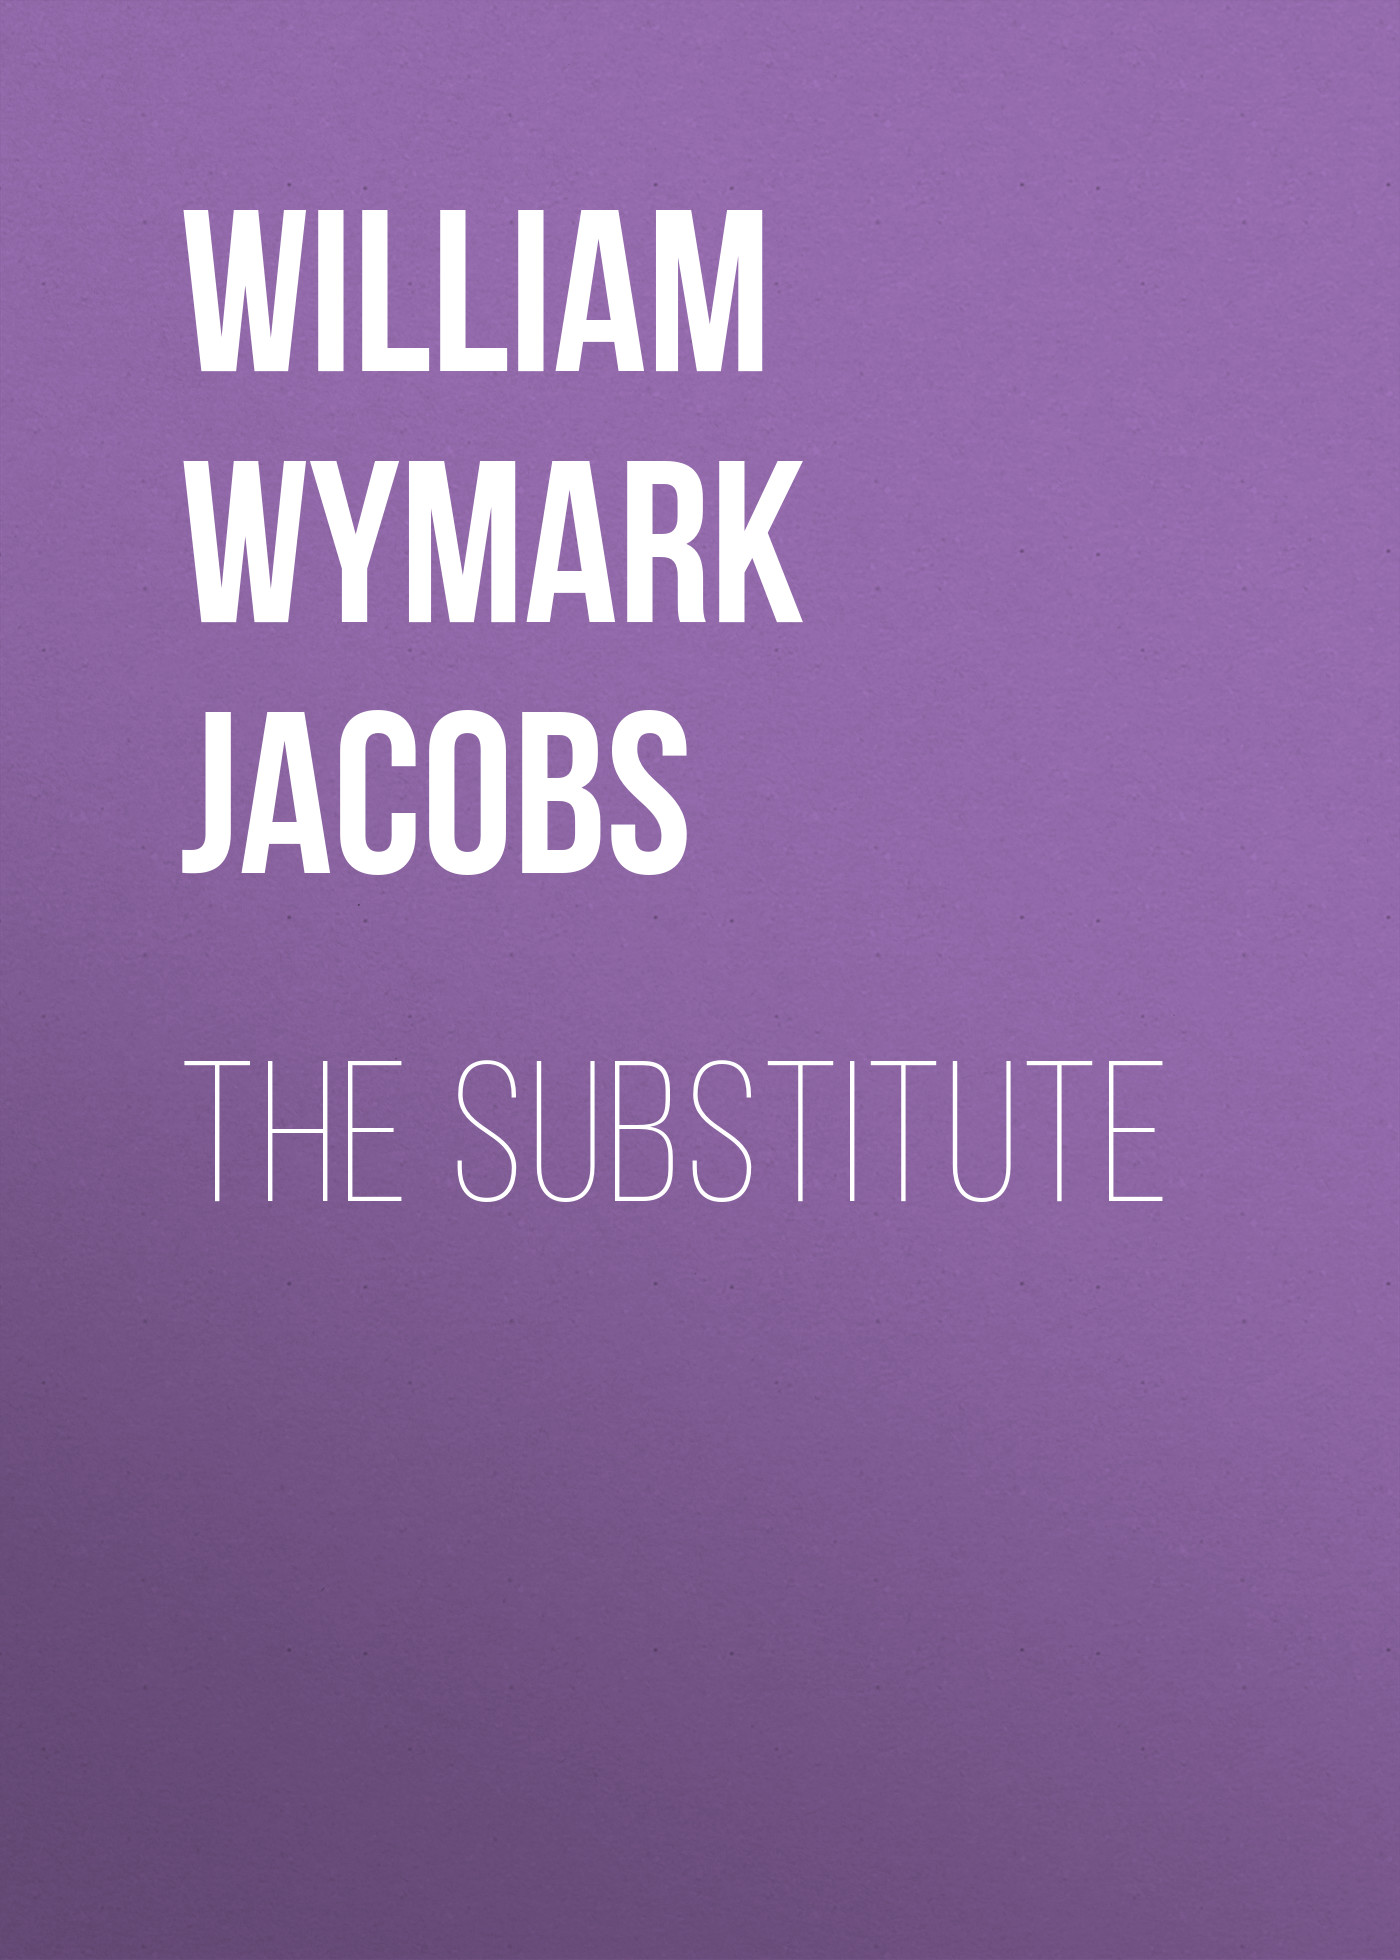 William Wymark Jacobs The Substitute